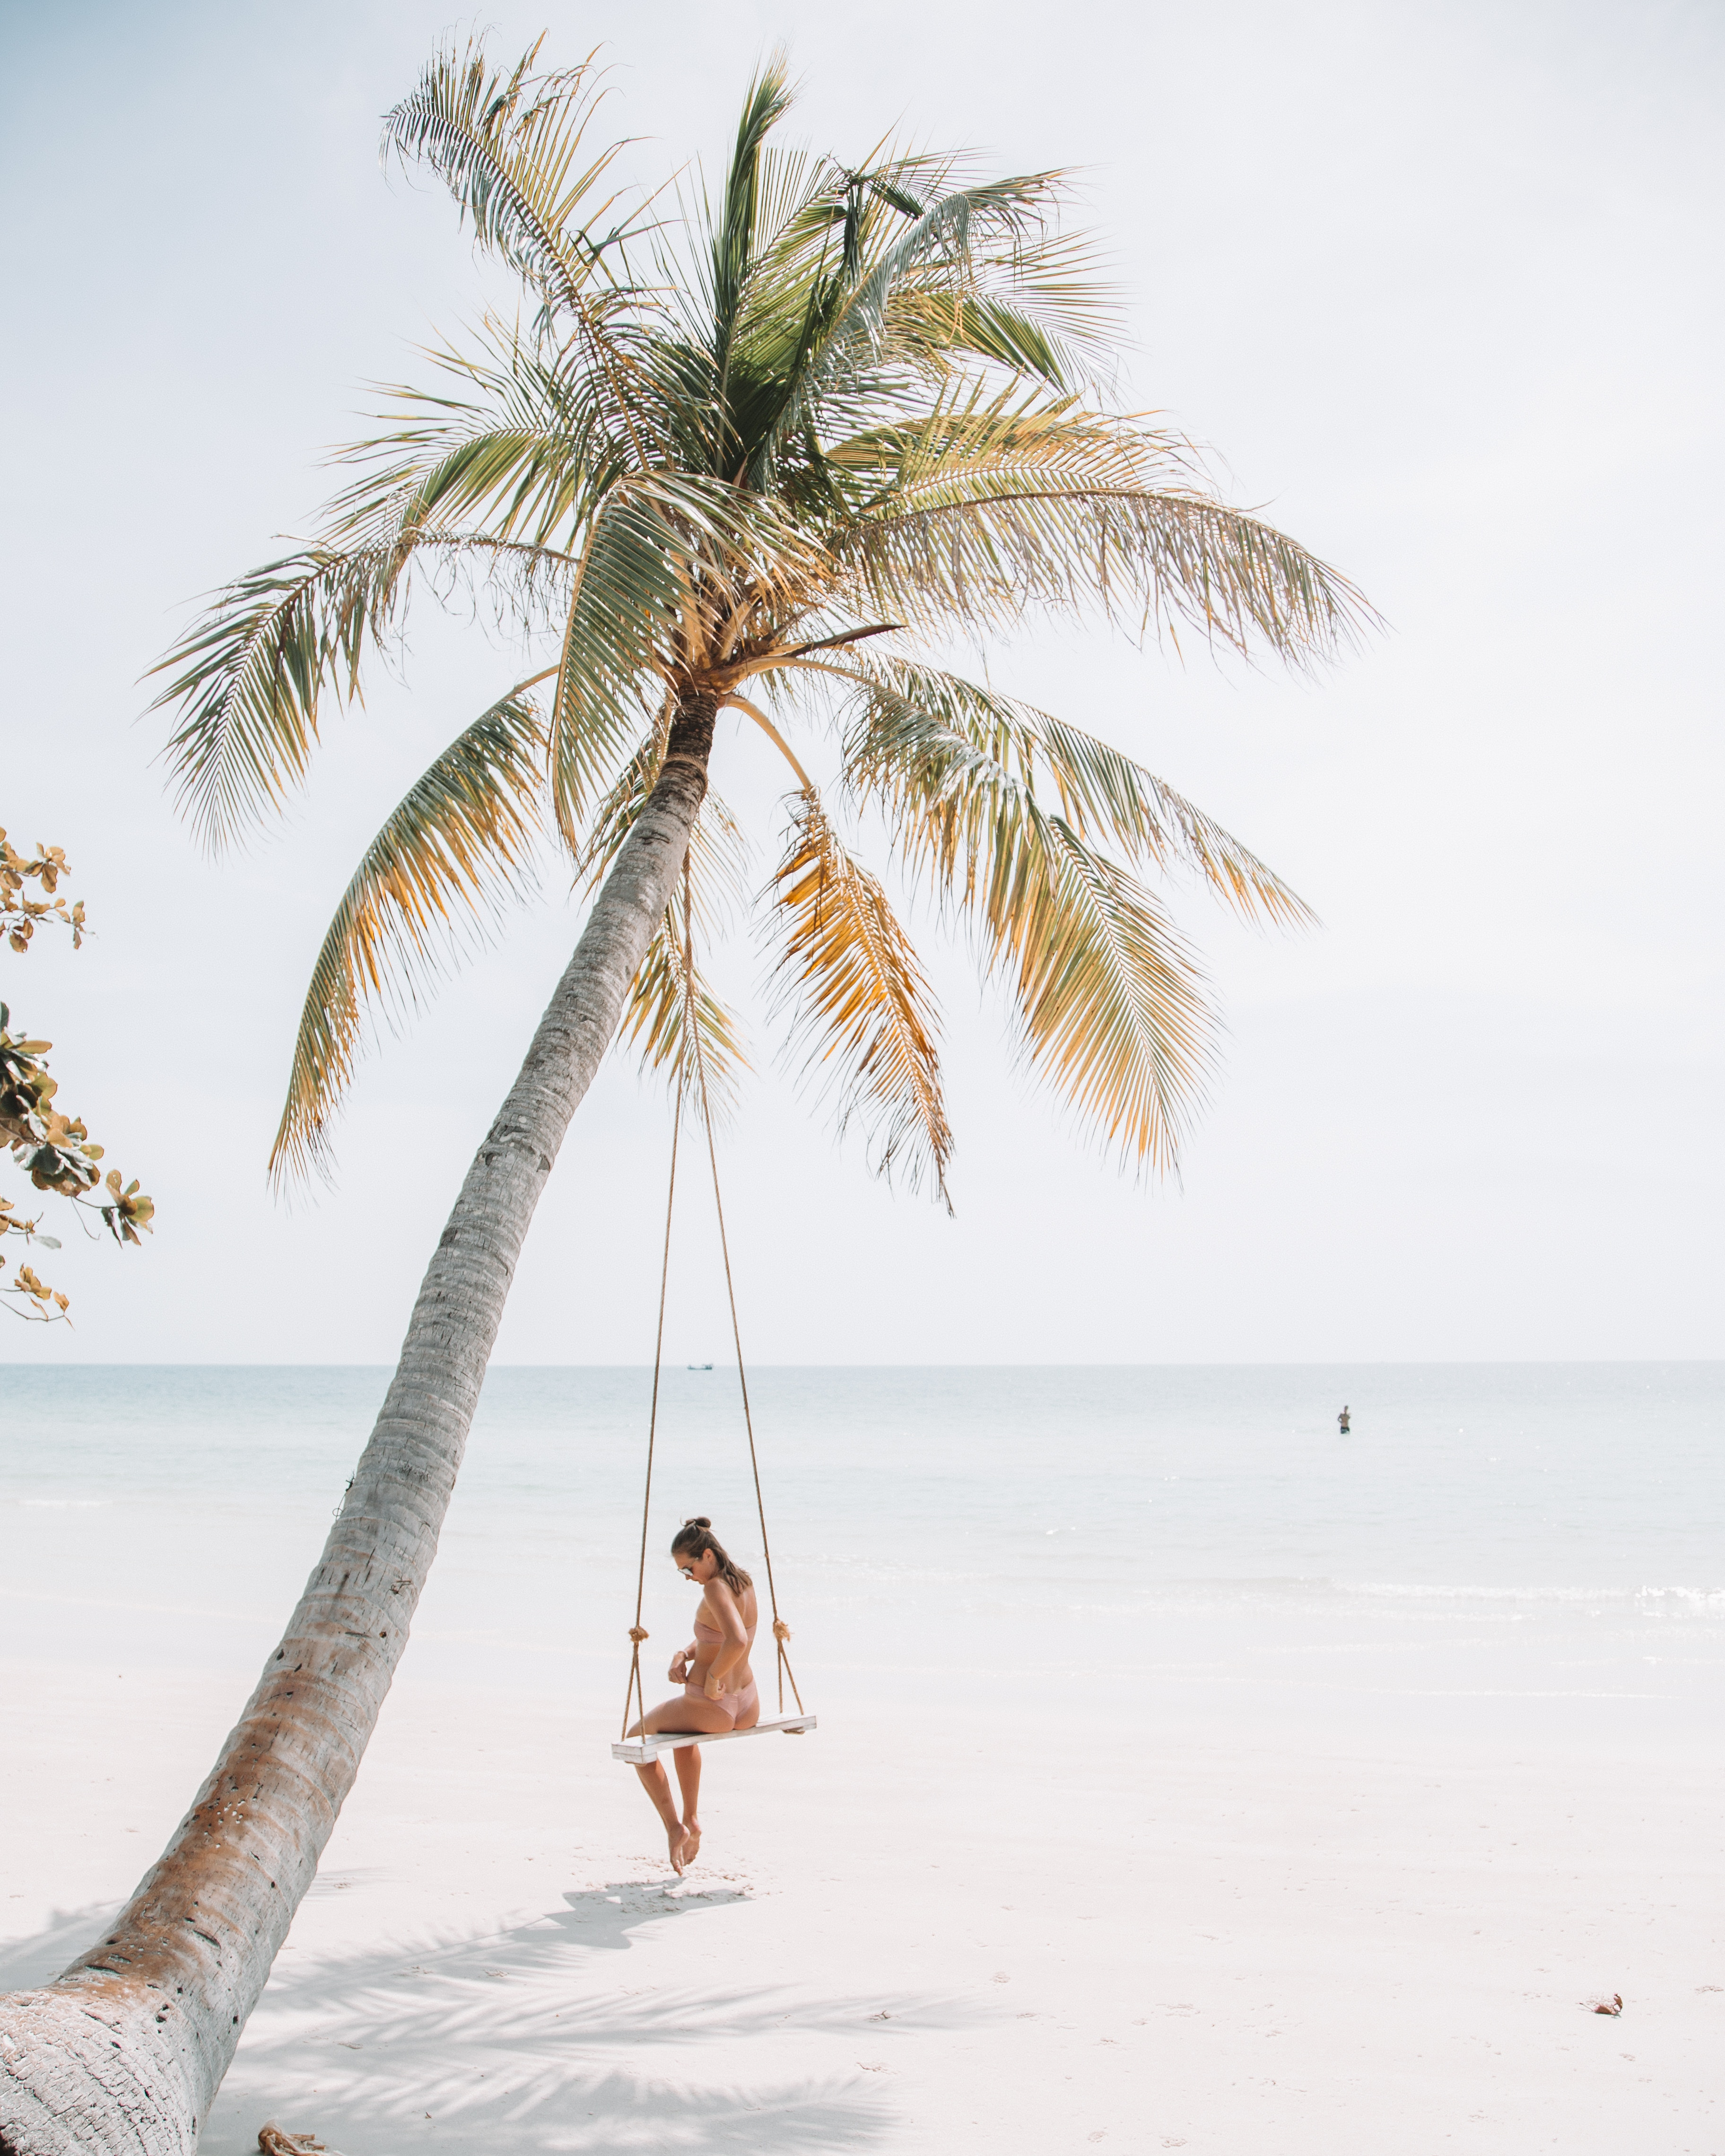 palm tree in vietnam on beautiful beach with girl on a swing set